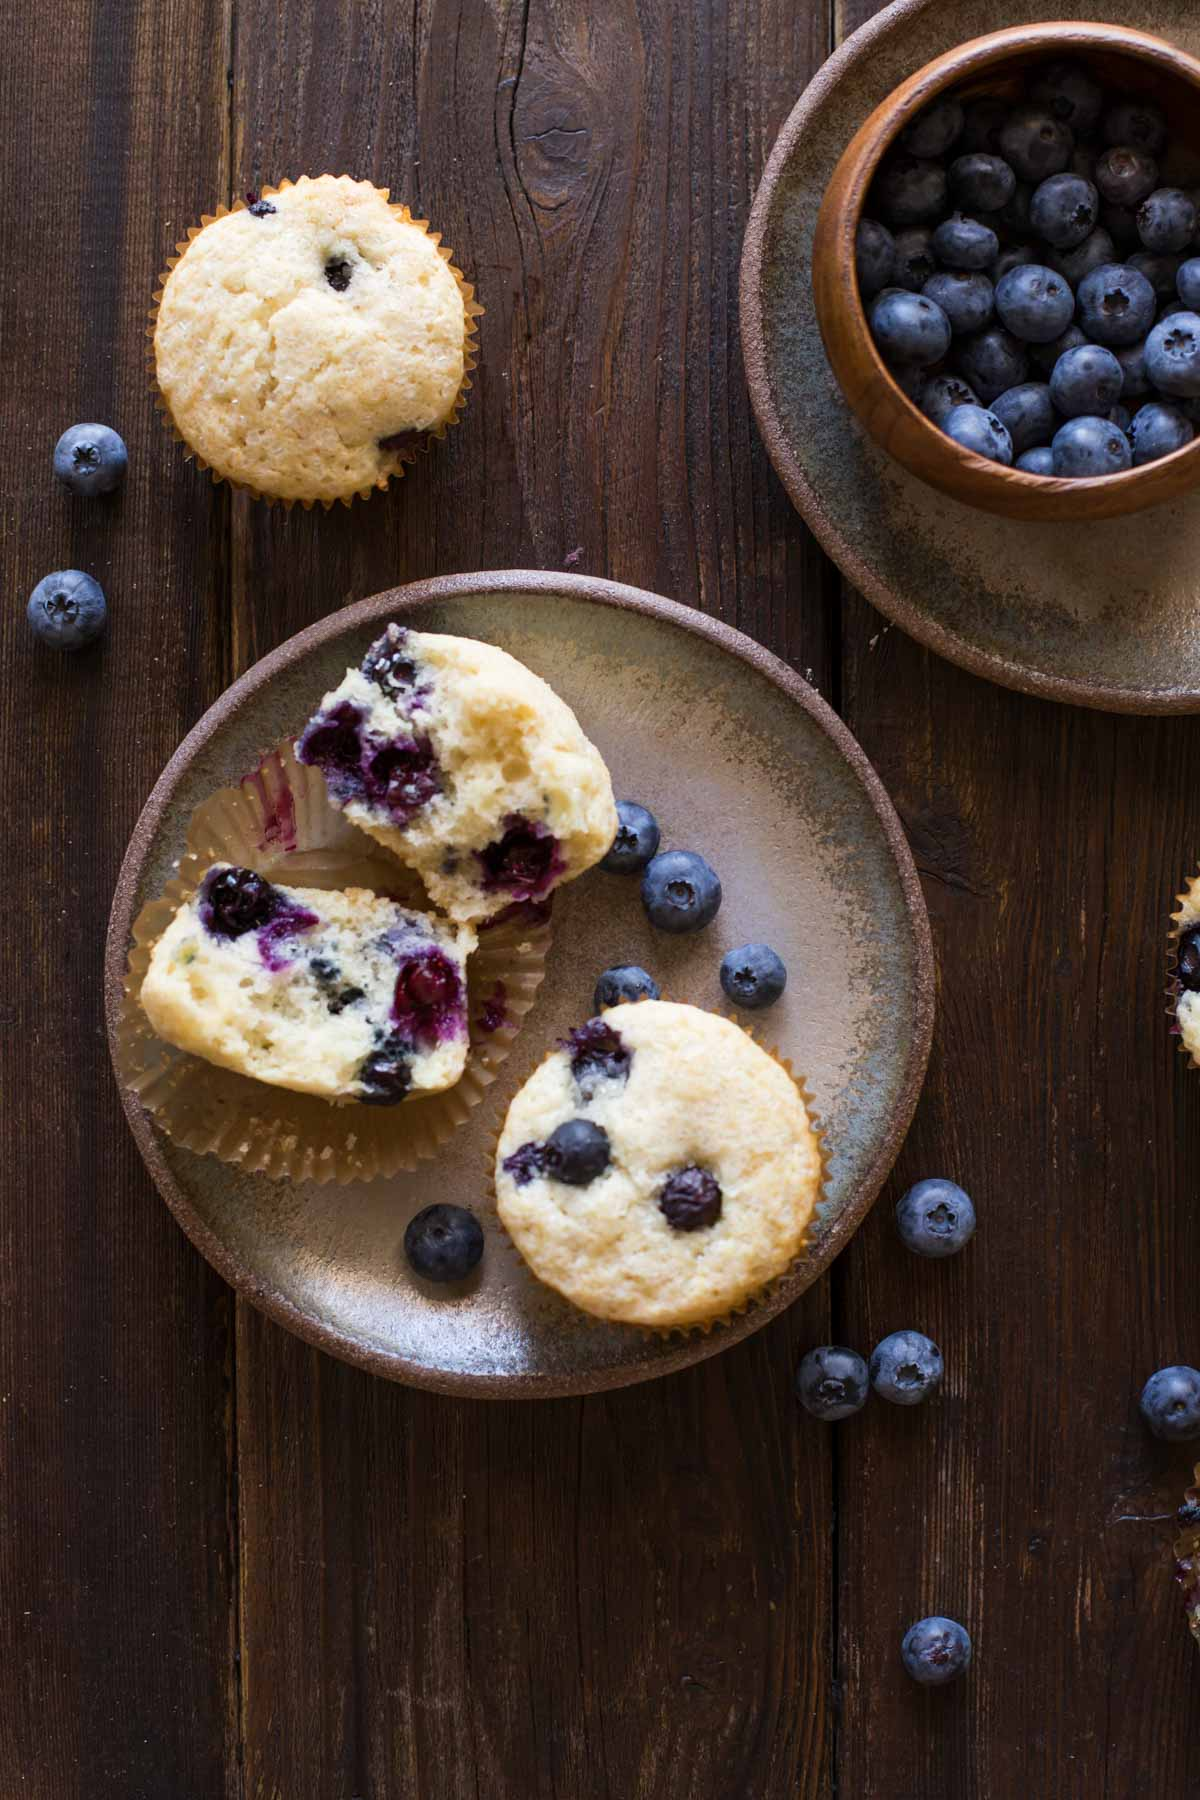 A Vanilla Blueberry Buttermilk Muffin split in half, sitting on a plate with a whole muffin and some blueberries, with a muffin and blueberries near the plate, and a wood bowl of blueberries sitting on another plate.